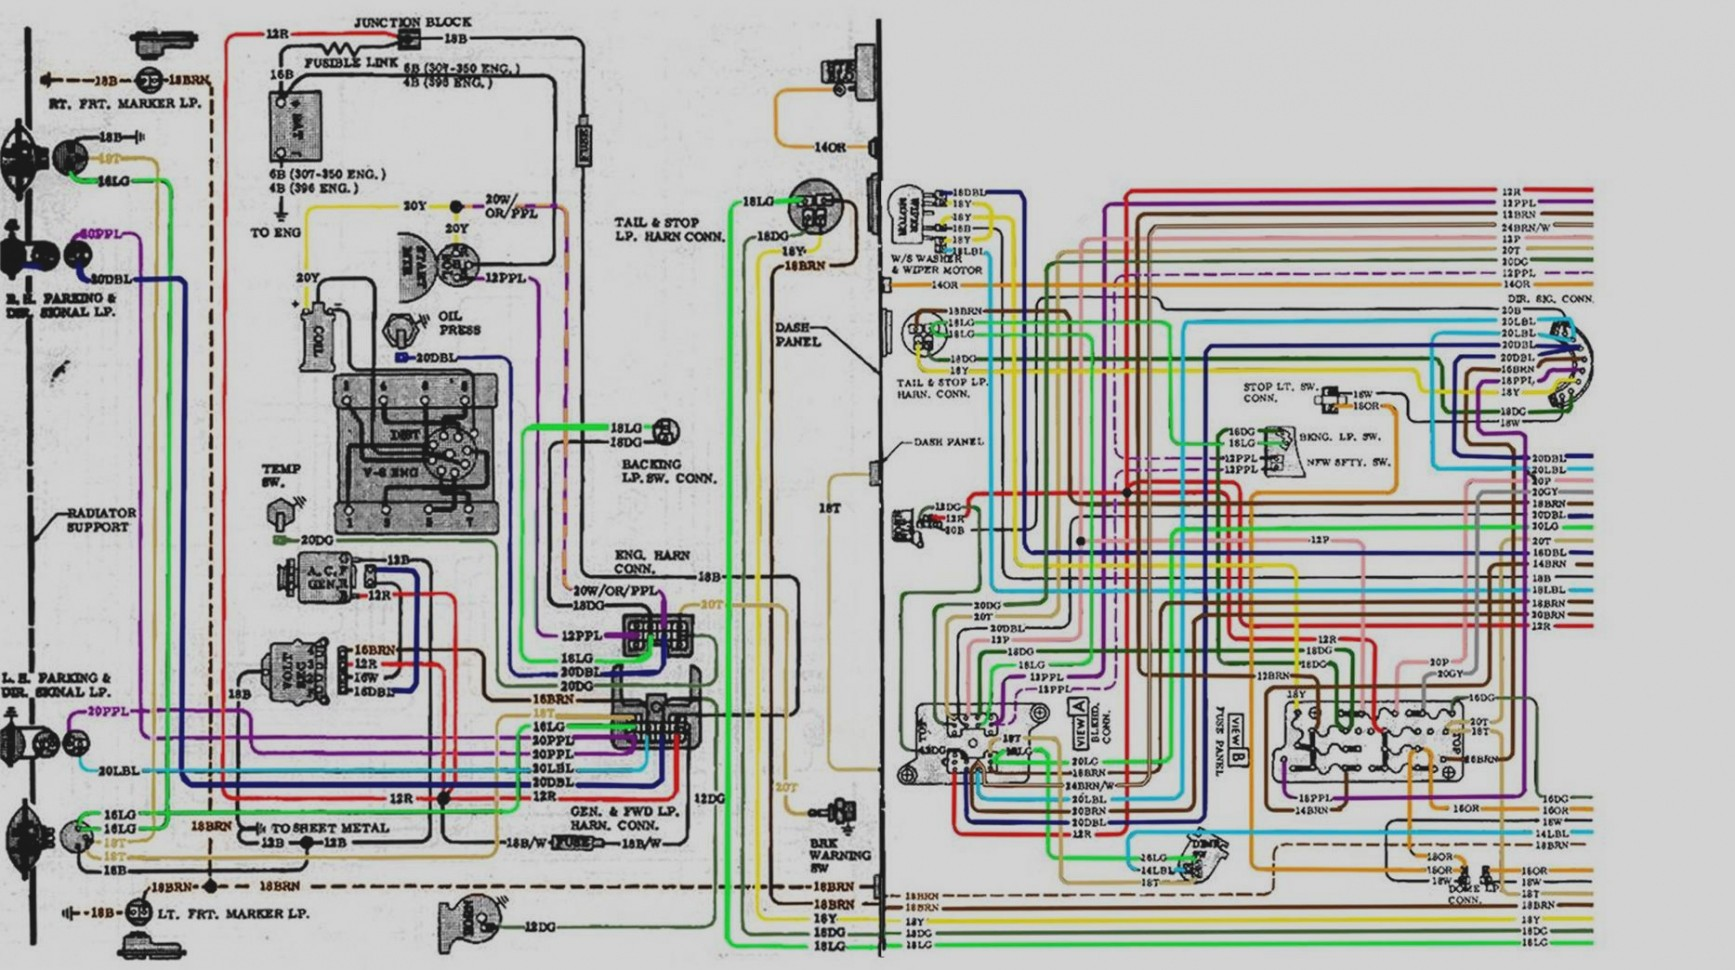 File Name: 1972 Fj40 Wiring Diagram